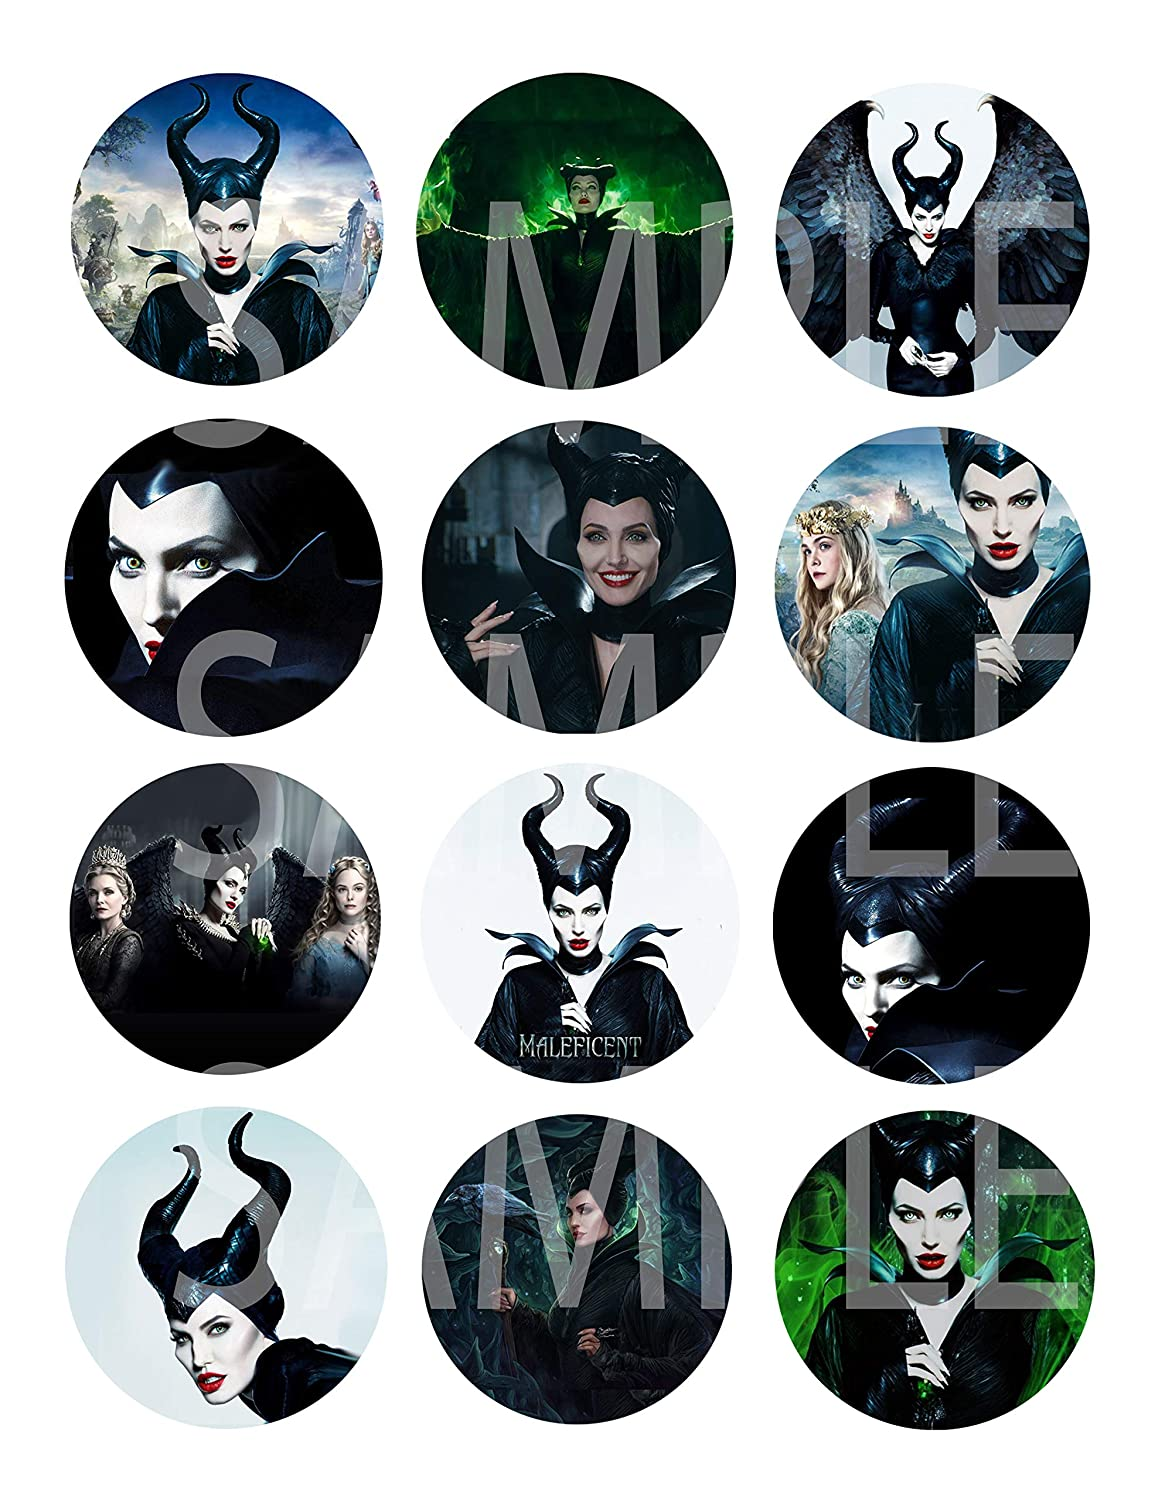 """Maleficent Stickers Large 2.5/"""" Round Circle DIY Stickers to Place onto Party Favor Bags Cards Boxes or Containers -12 pcs Evie Halloween Mistress of Evil Princess Aurora Sleeping Beauty Queen Ingr"""